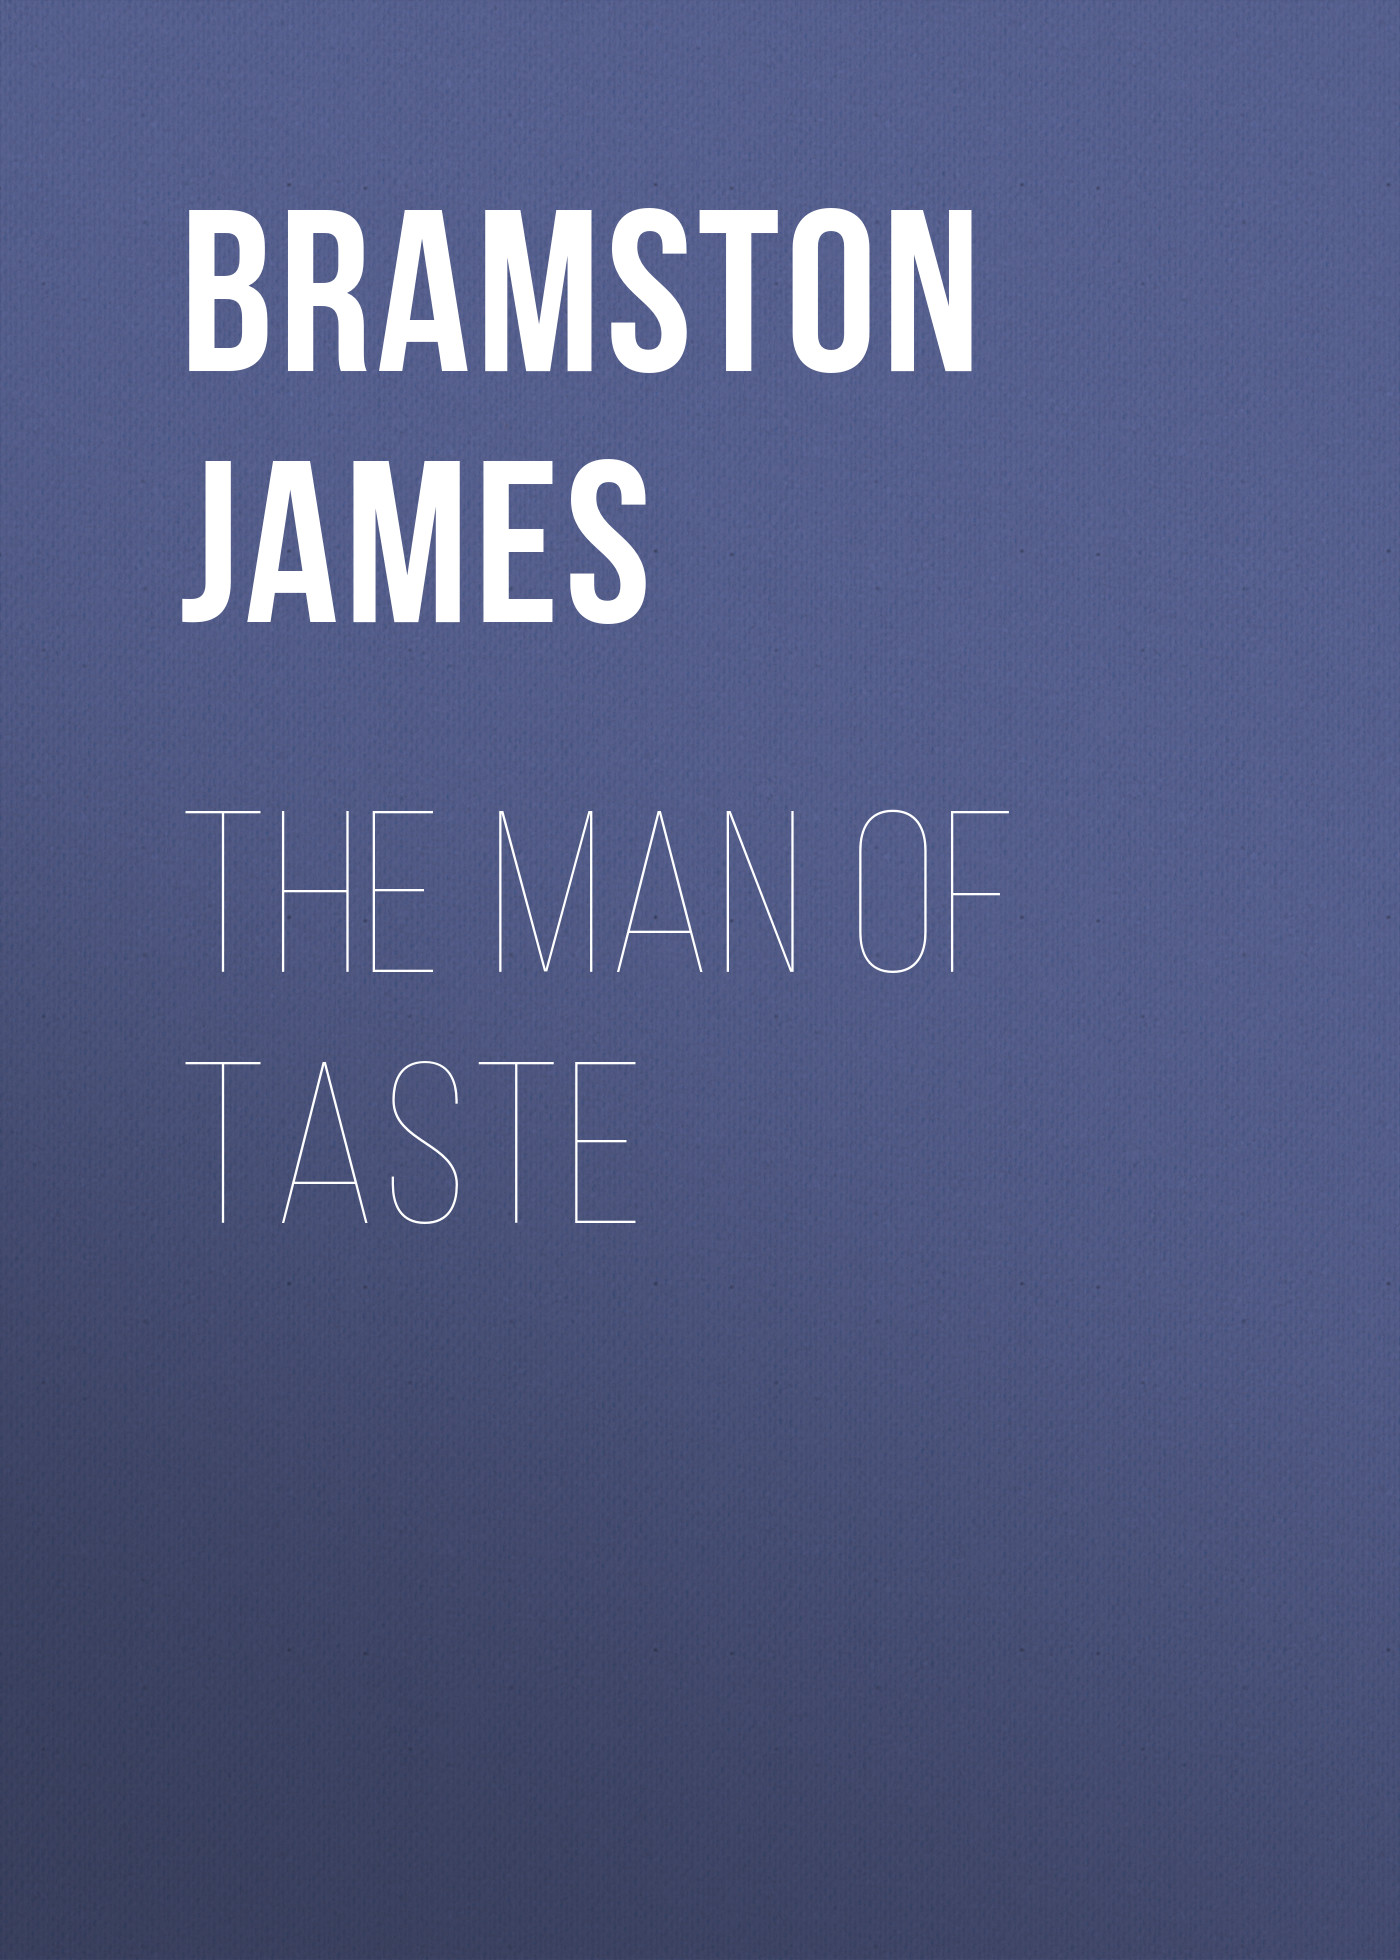 цена на Bramston James The Man of Taste